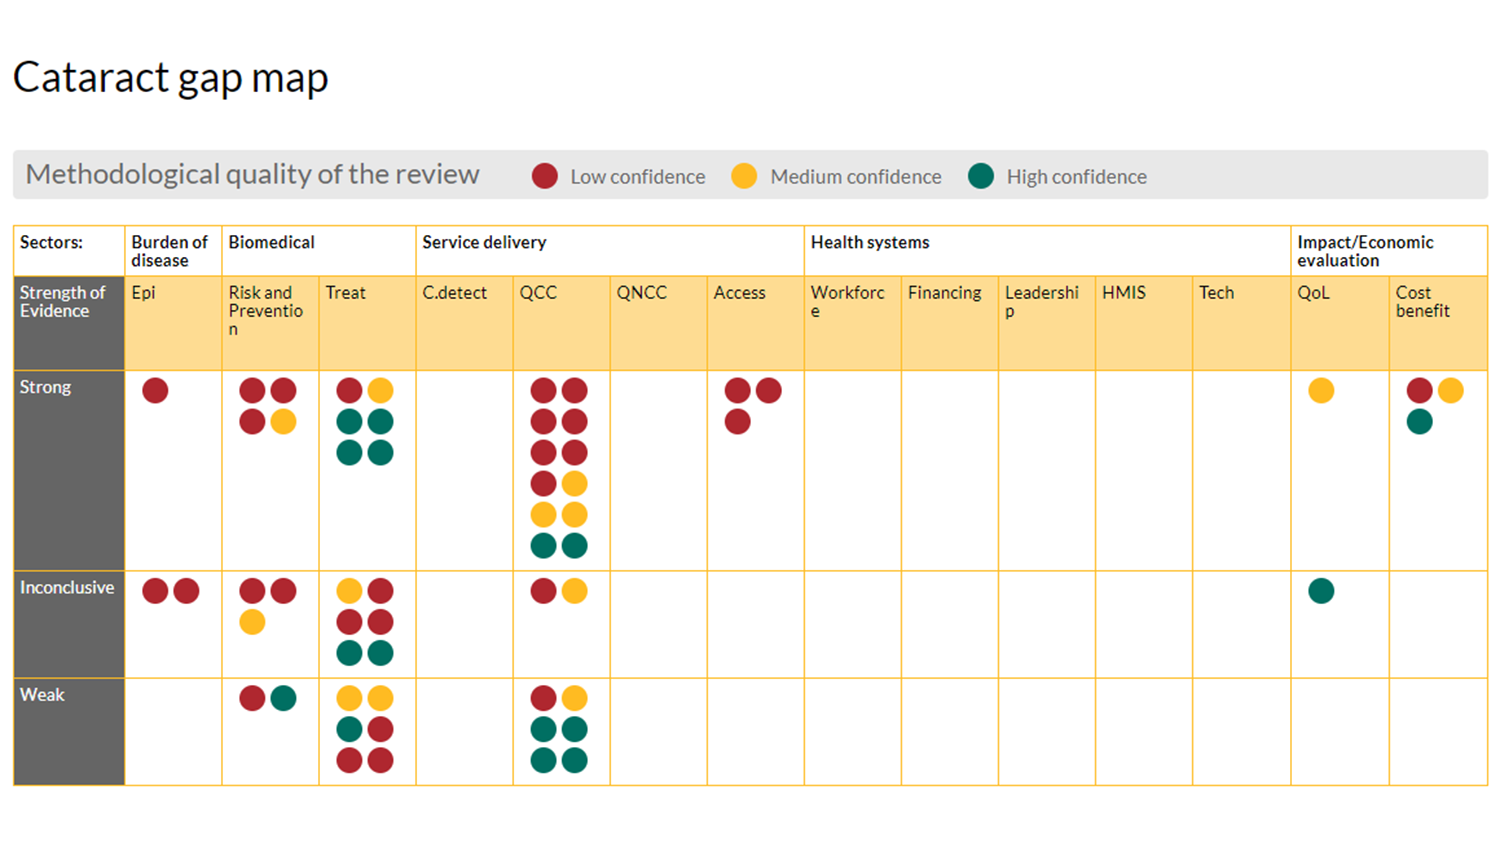 Graphic showing a Sightsavers evidence gap map (a grid marked with dots). The grid shows the strength of evidence (strong, inconclusive, weak) for sectors such as: burden of the disease, biomedical, service delivery, health systems, impact/economic evaluation.